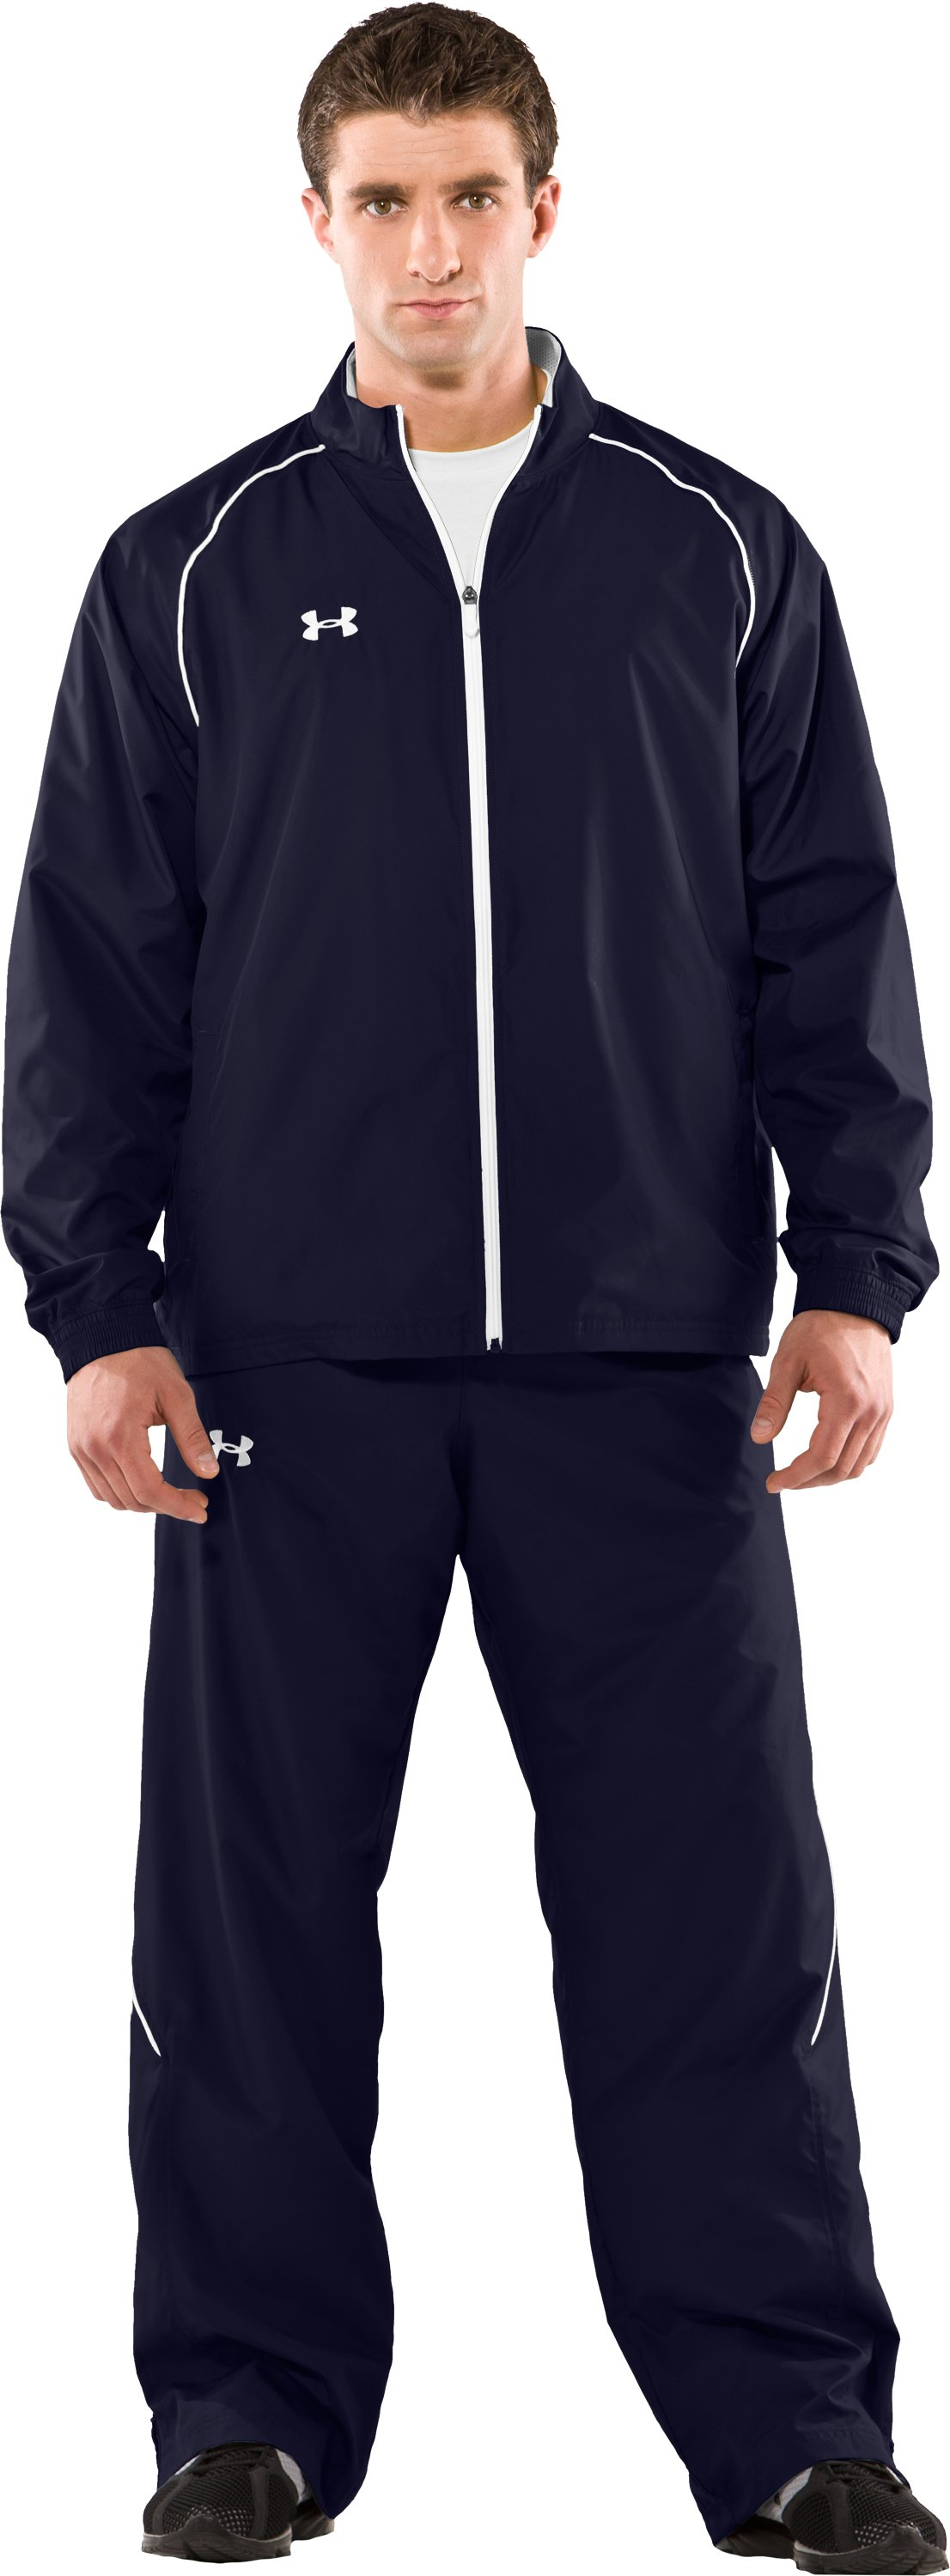 Men's UA Advance Woven Warm-Up Jacket, Midnight Navy